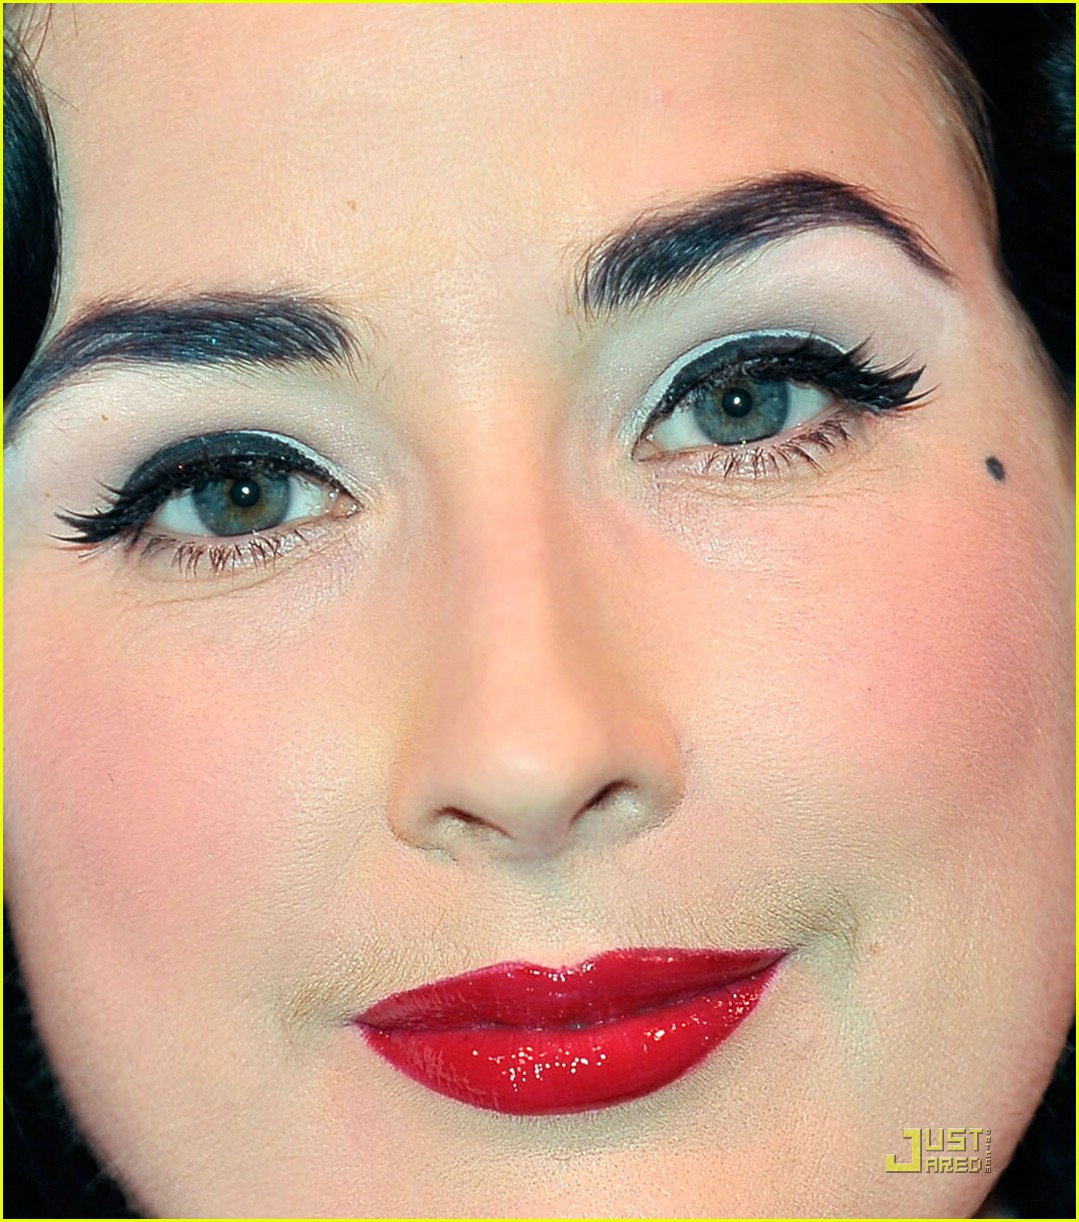 Dita Von Teese Is A Martini Glass Girl: Photo 2069152  Dita Von Teese  Pictures  Just Jared